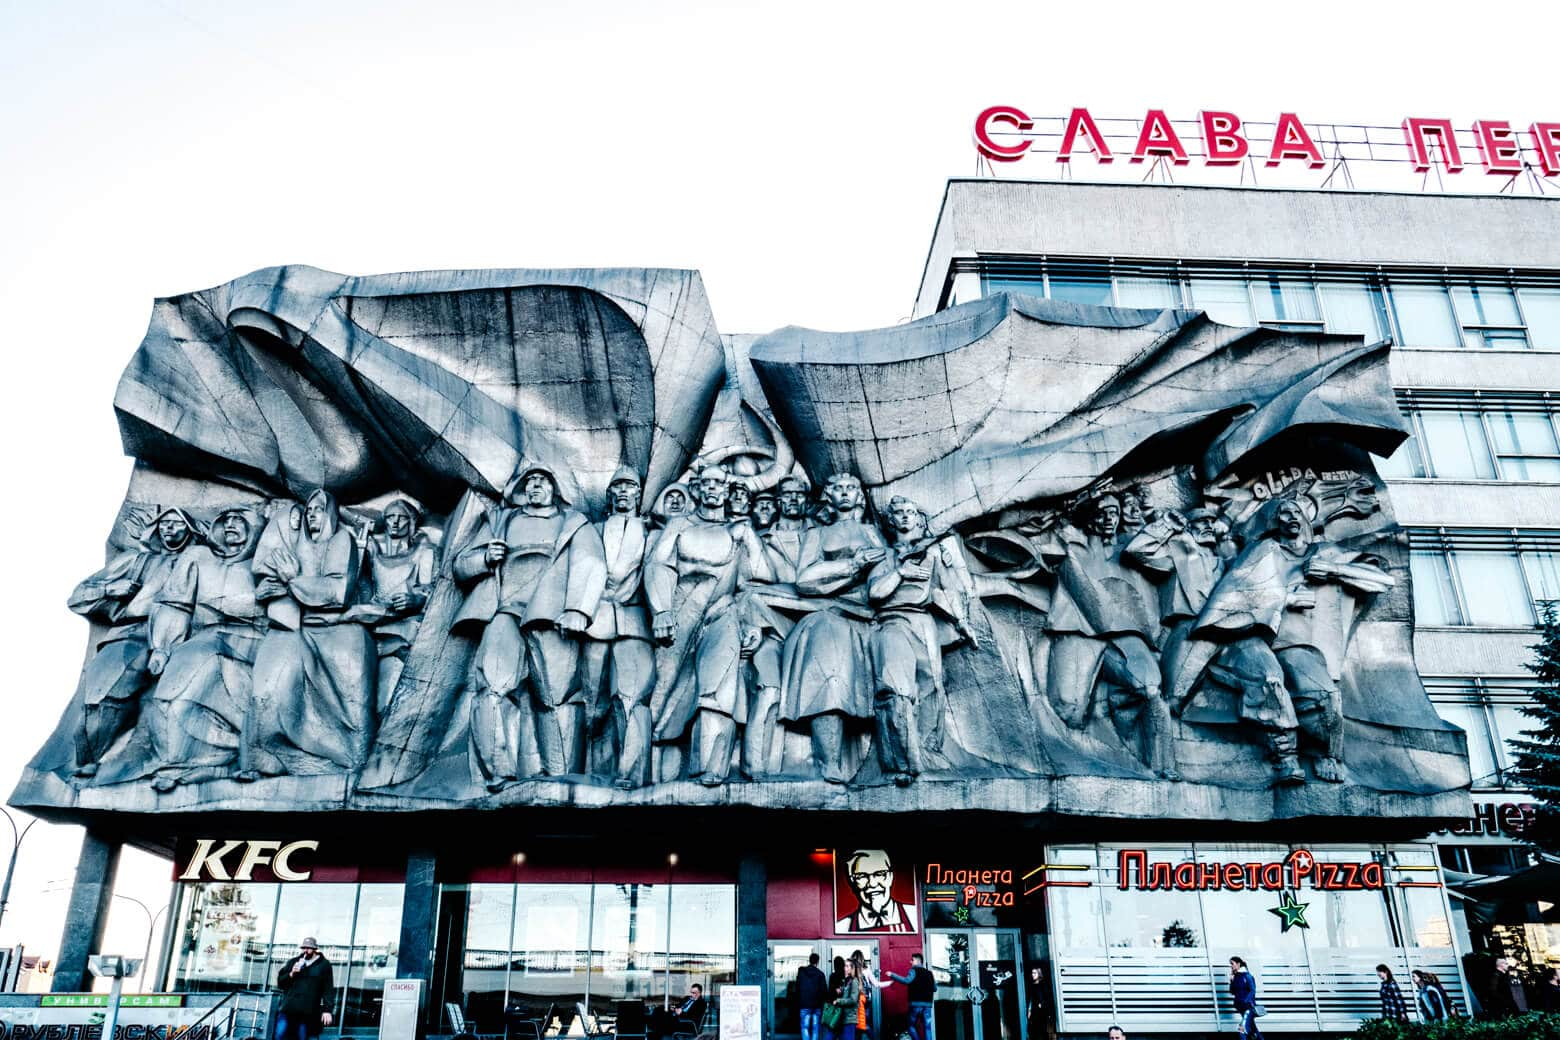 Soviet Workers' Monument in Minsk